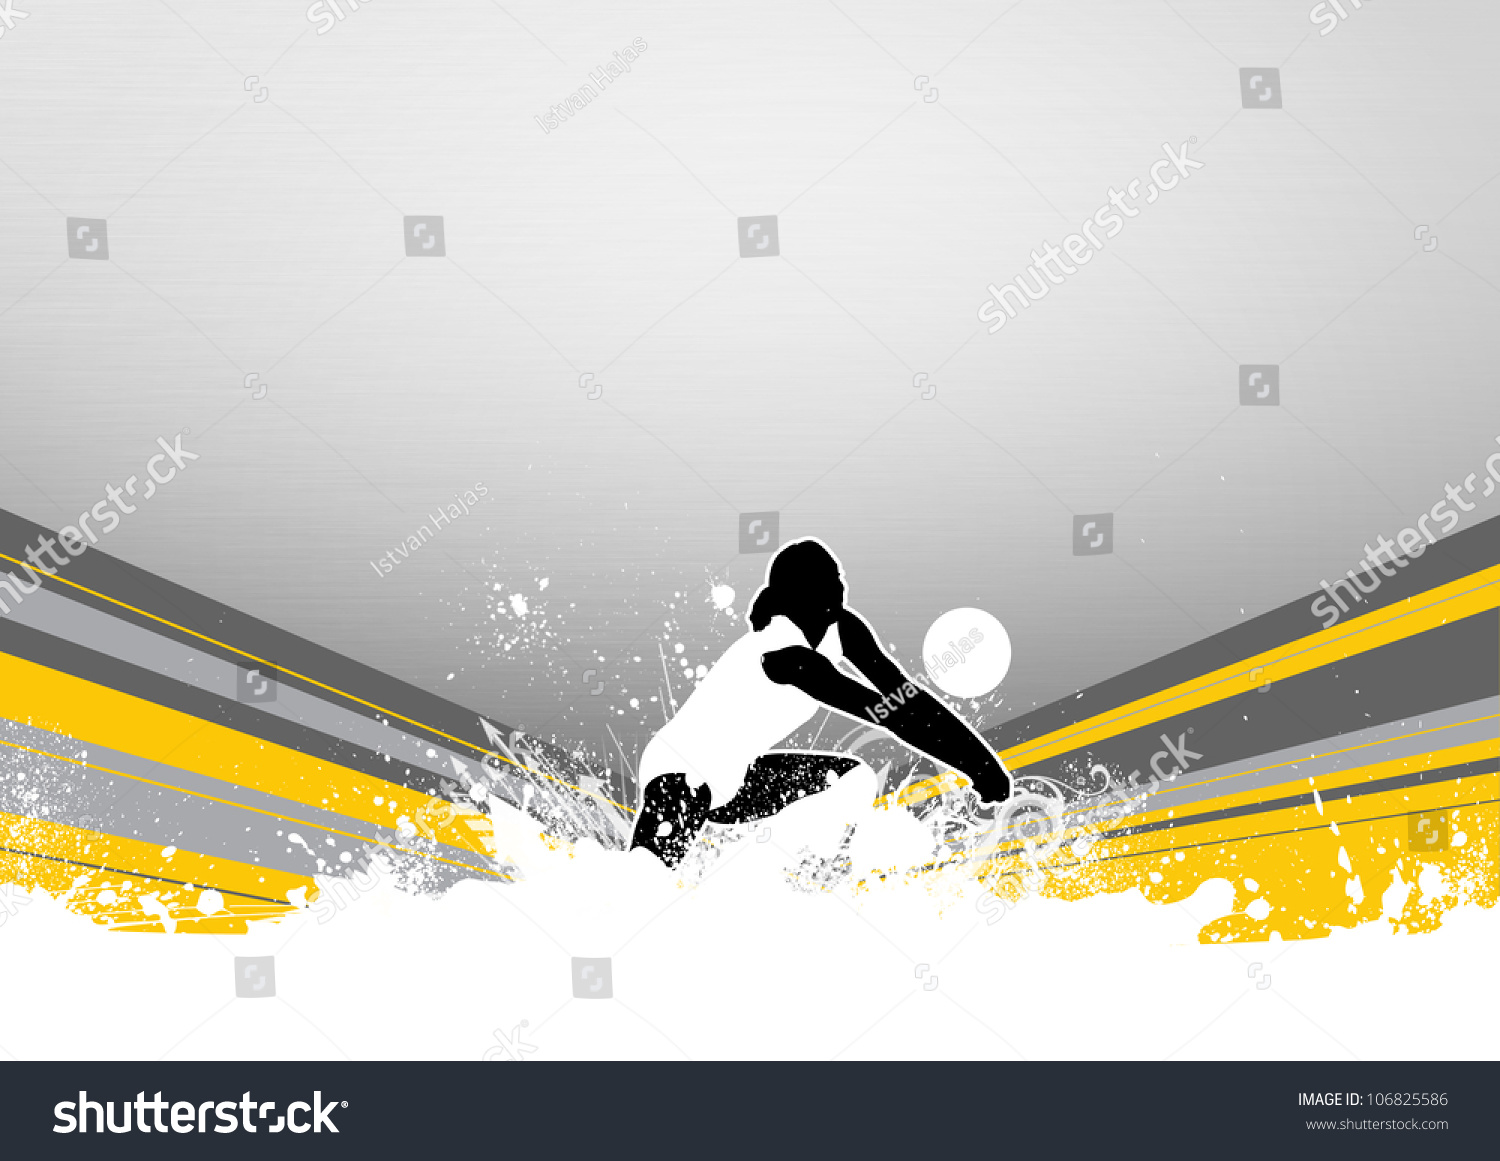 Abstract Grungy Background Volleyball Arrowhead Stock: Abstract Grunge Color Volleyball Background Space Stock